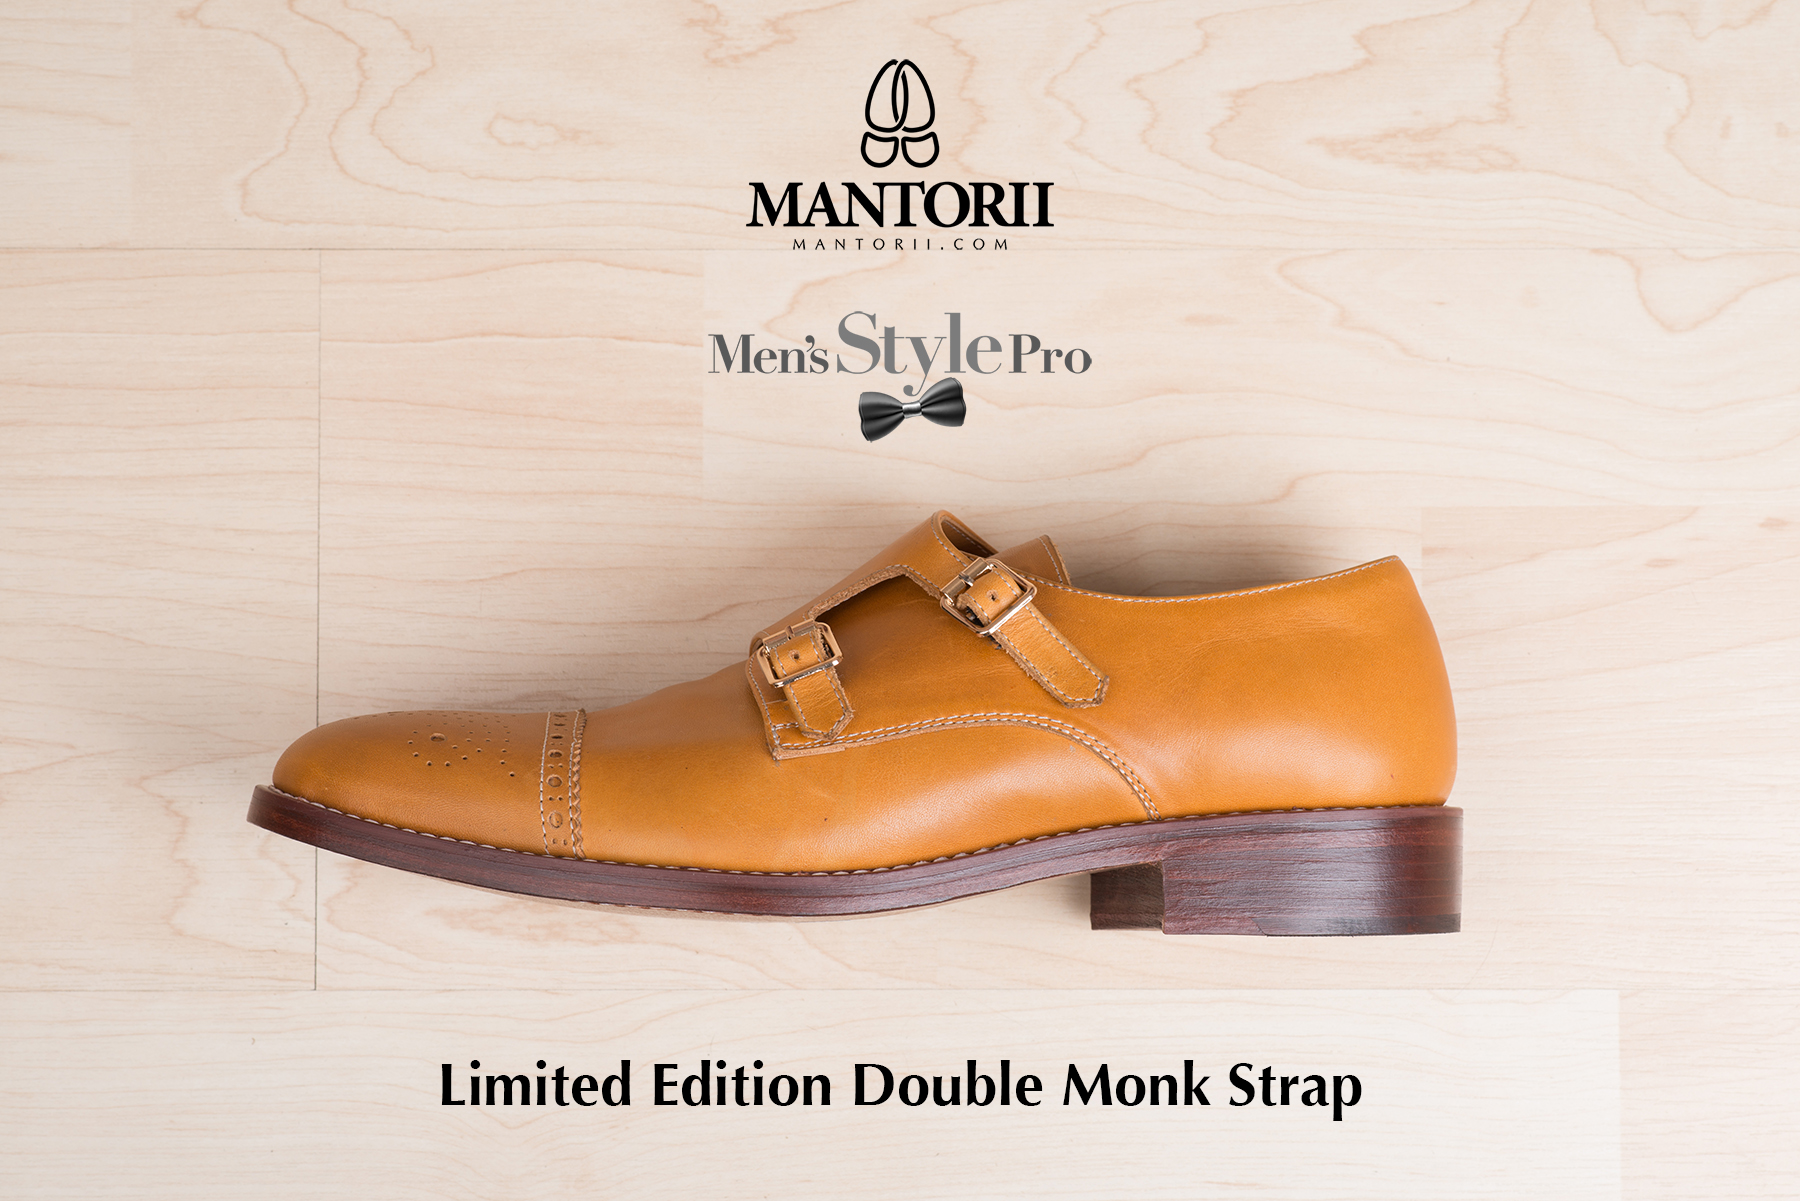 The Men S Style Pro X Mantorii Custom Double Monk Strap Shoes